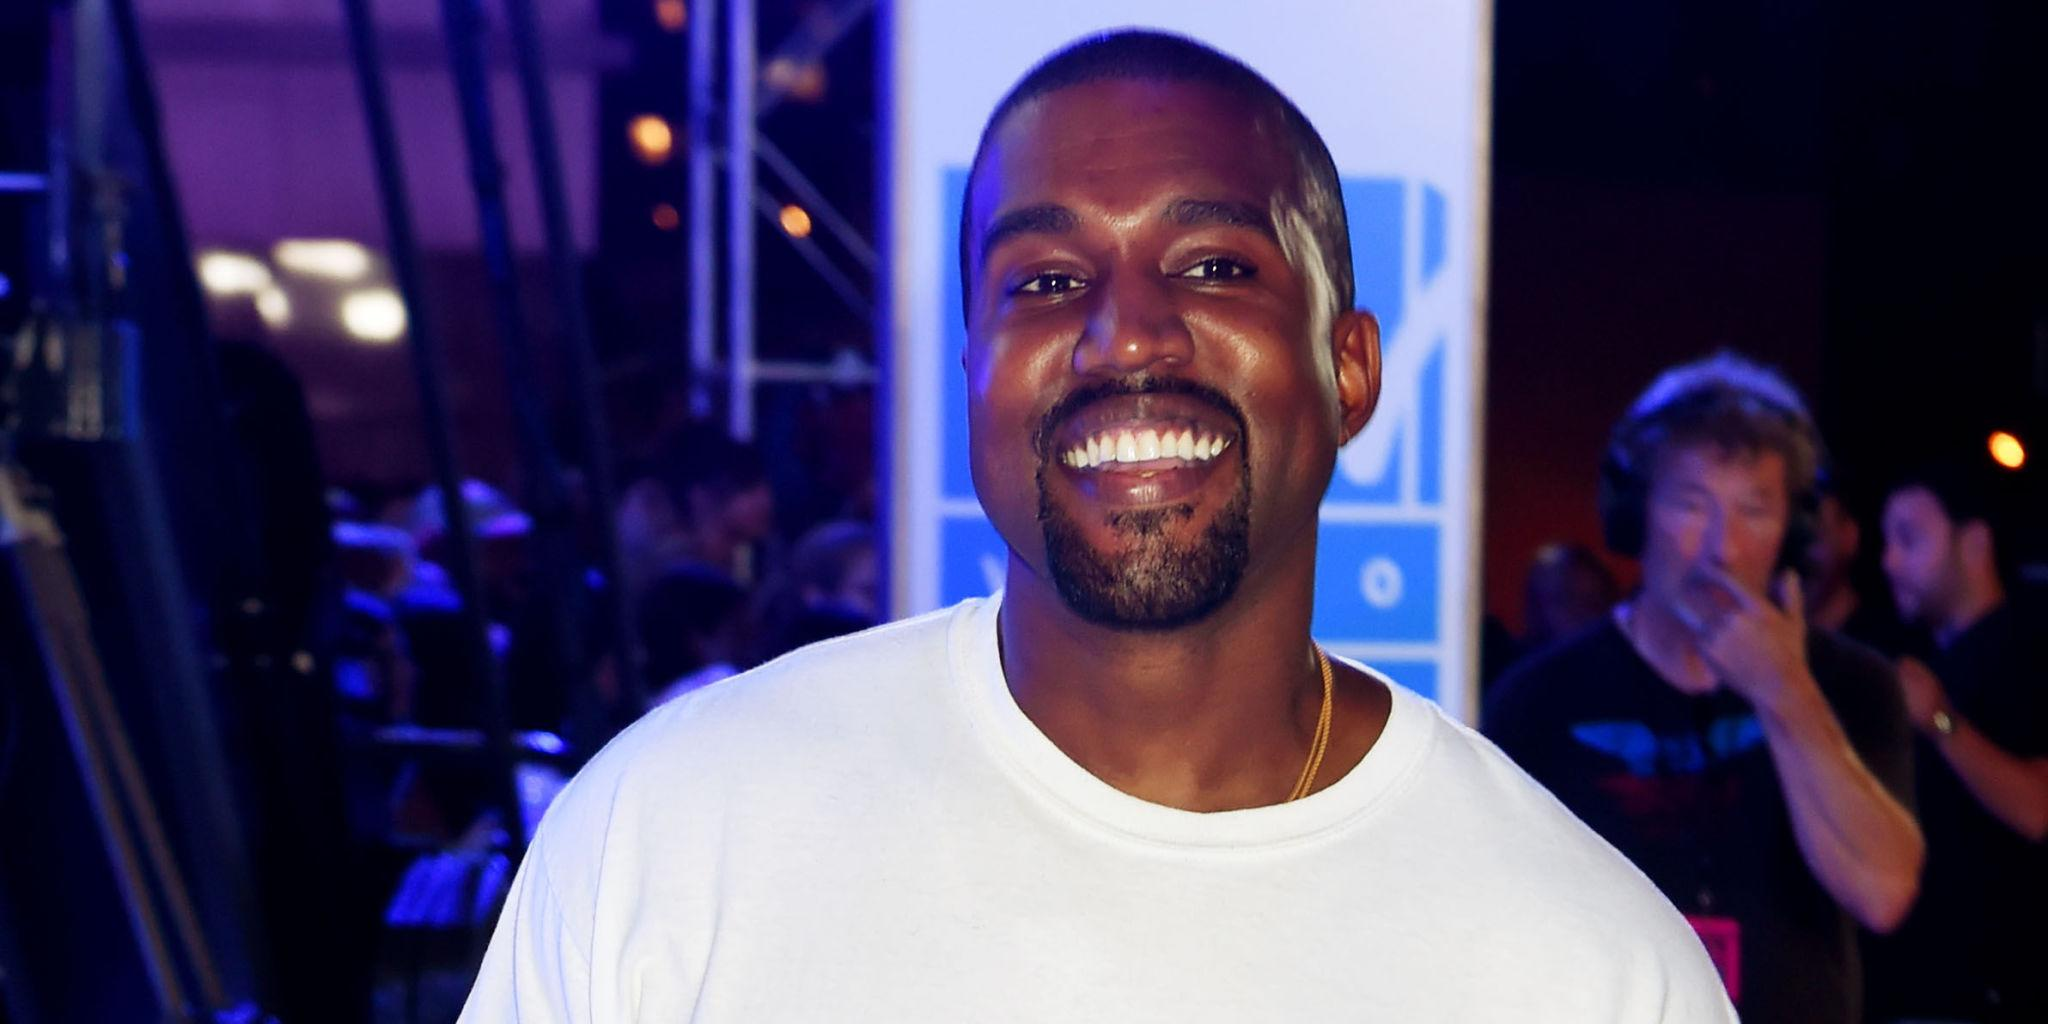 Wow, Did You Catch That Major Taylor Swift Shade in Kanye West's VMA Speech?